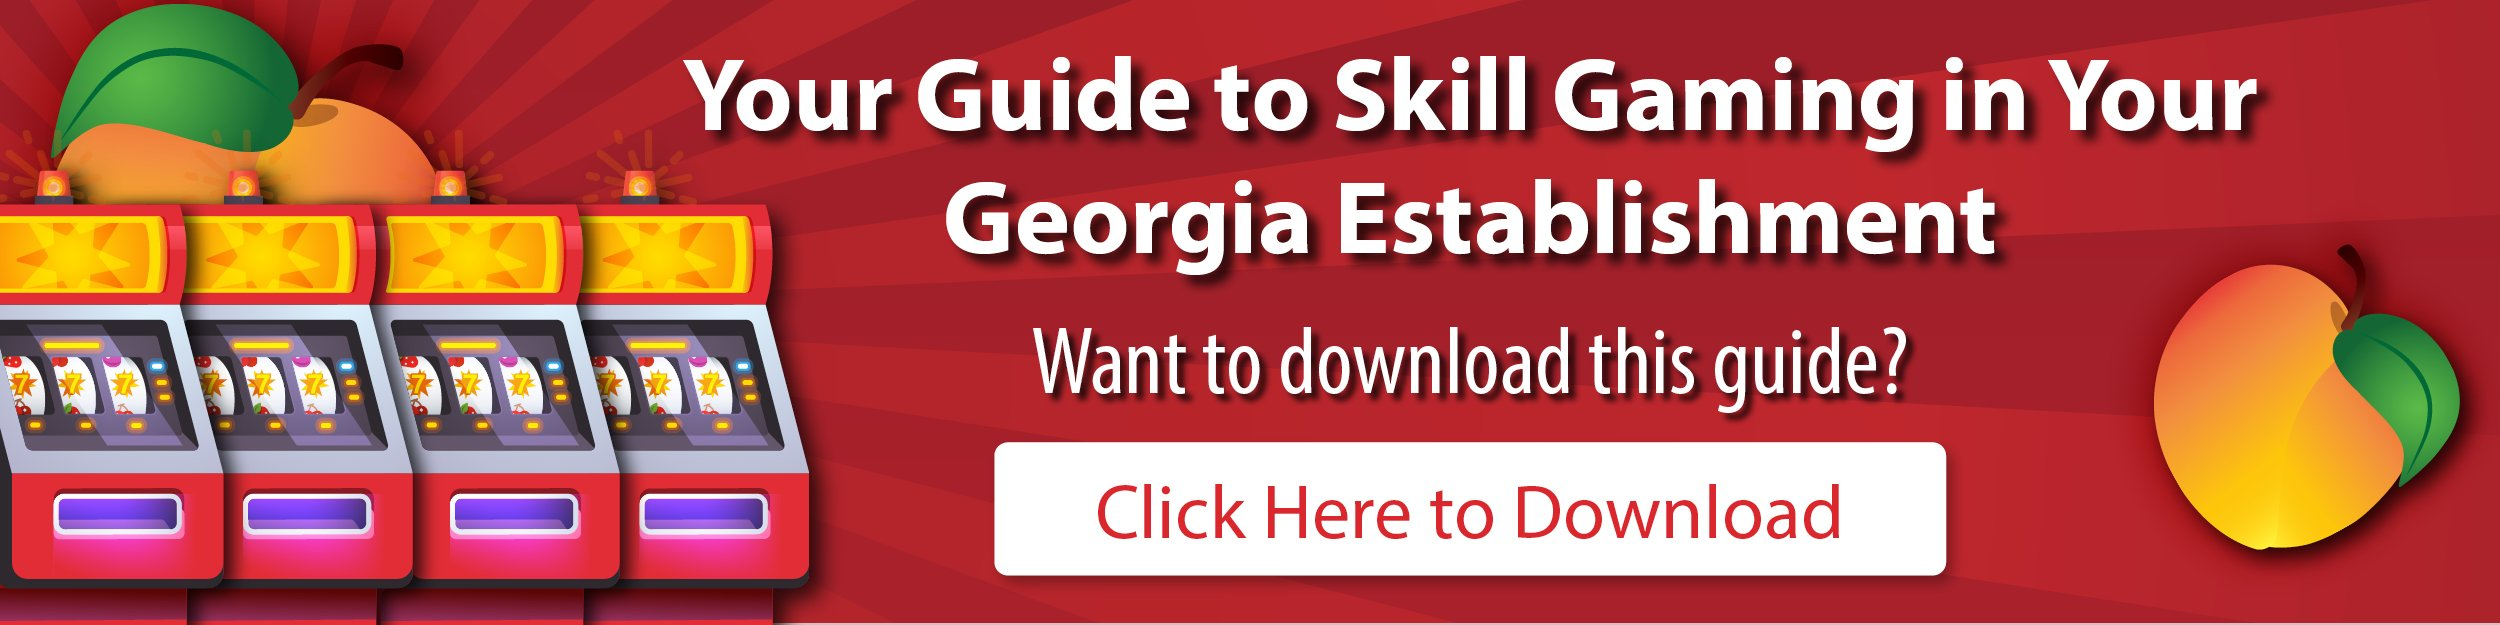 Your Guide to Skill Gaming in Your GA Establishment_CTA_Web Banner